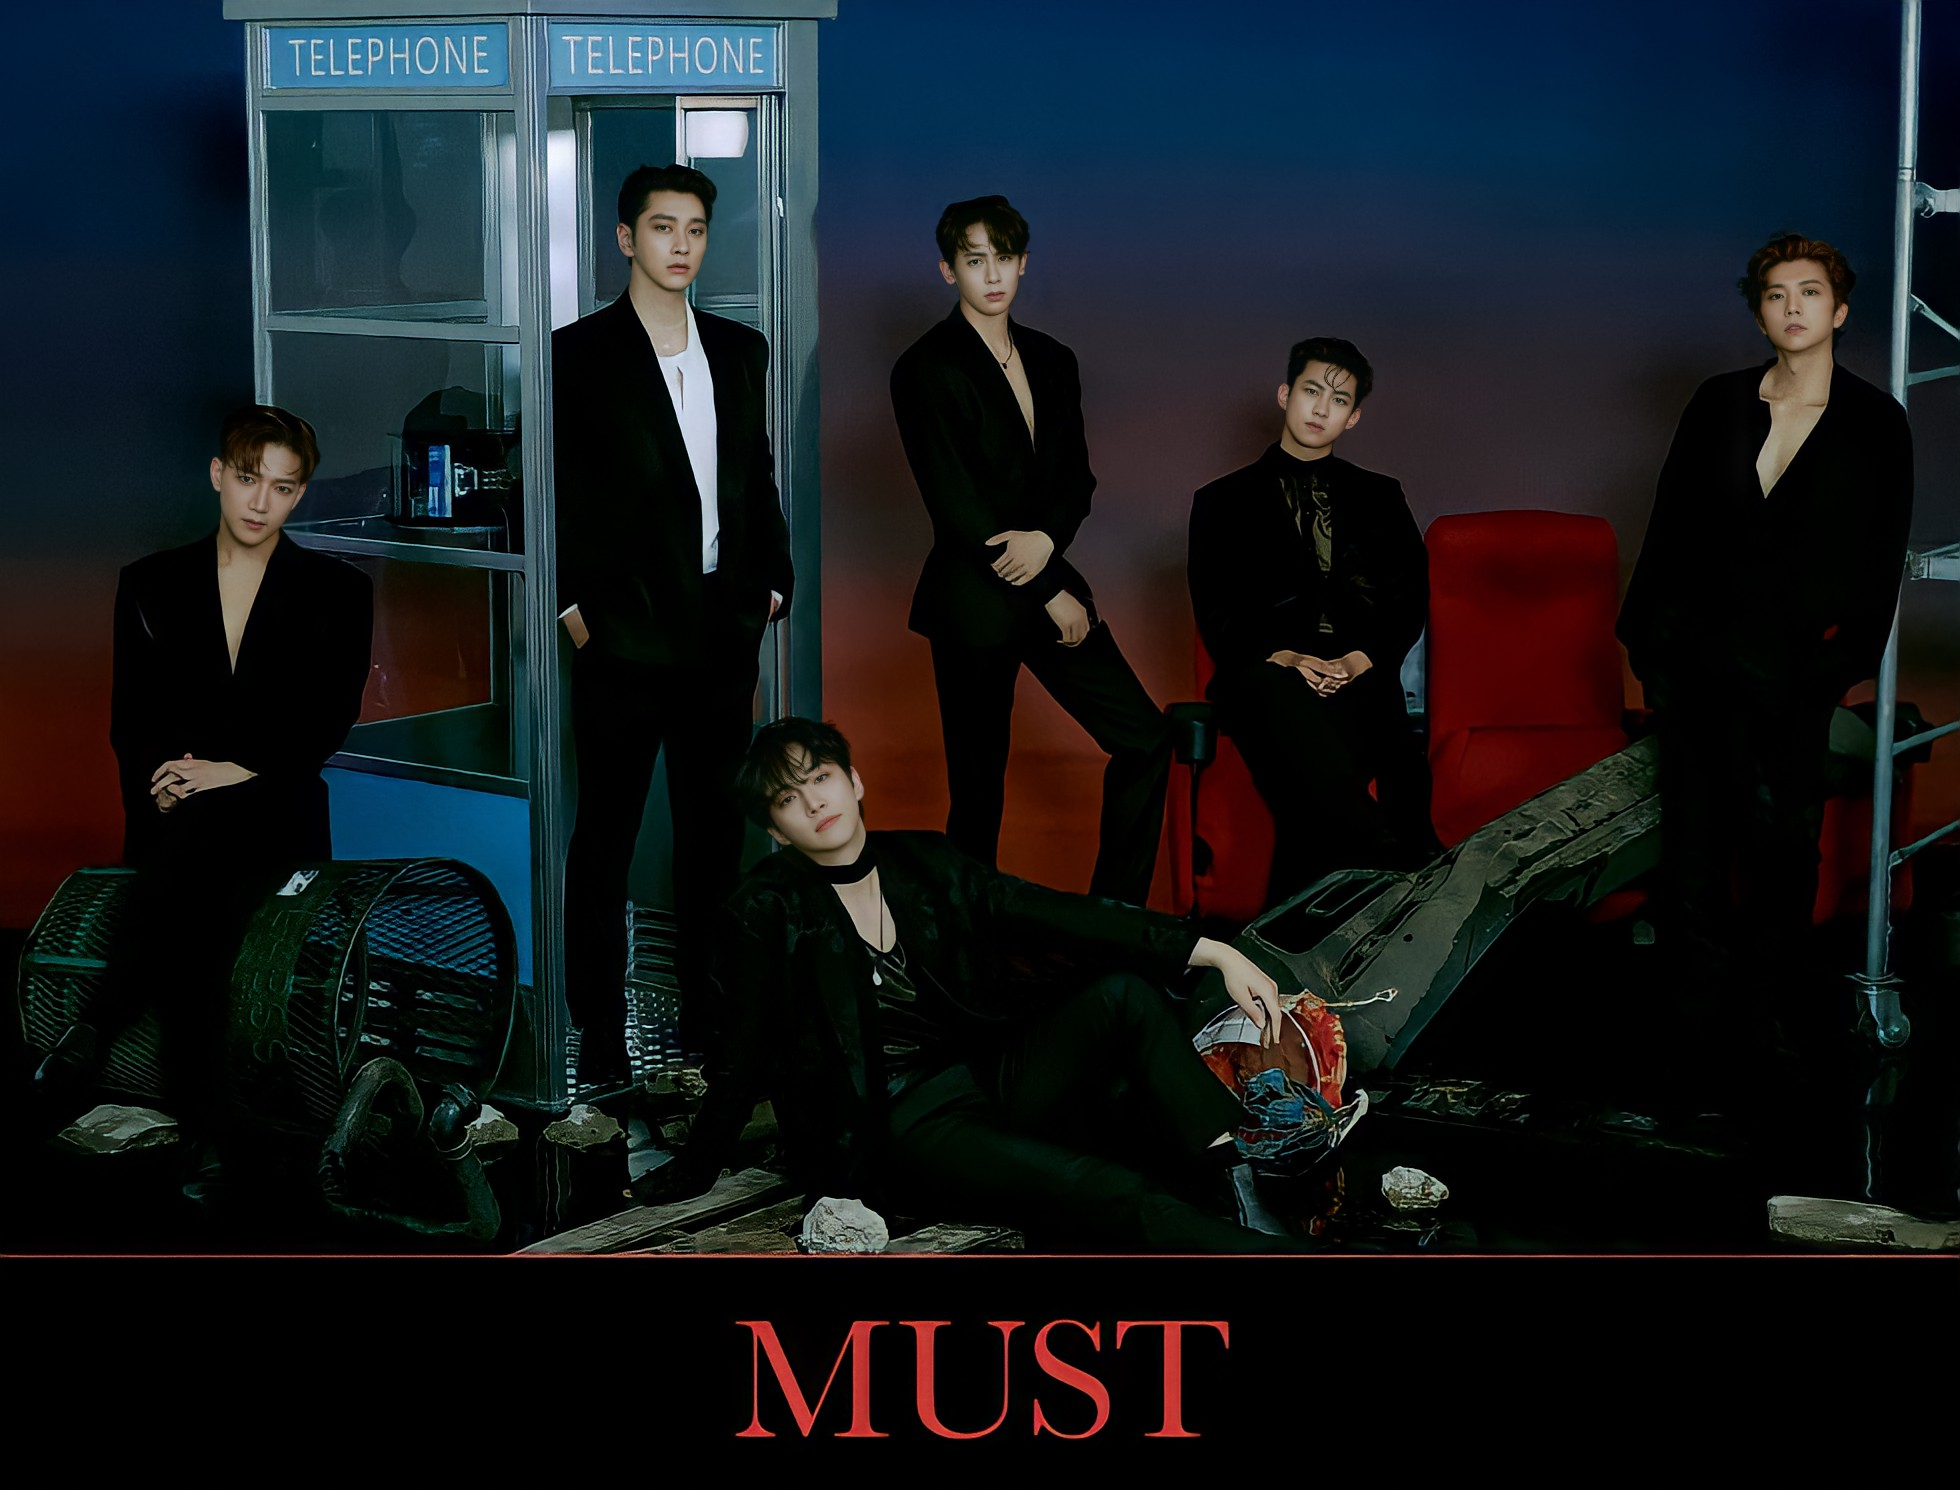 Album Review: MUST – 2PM Comeback After 5 Years